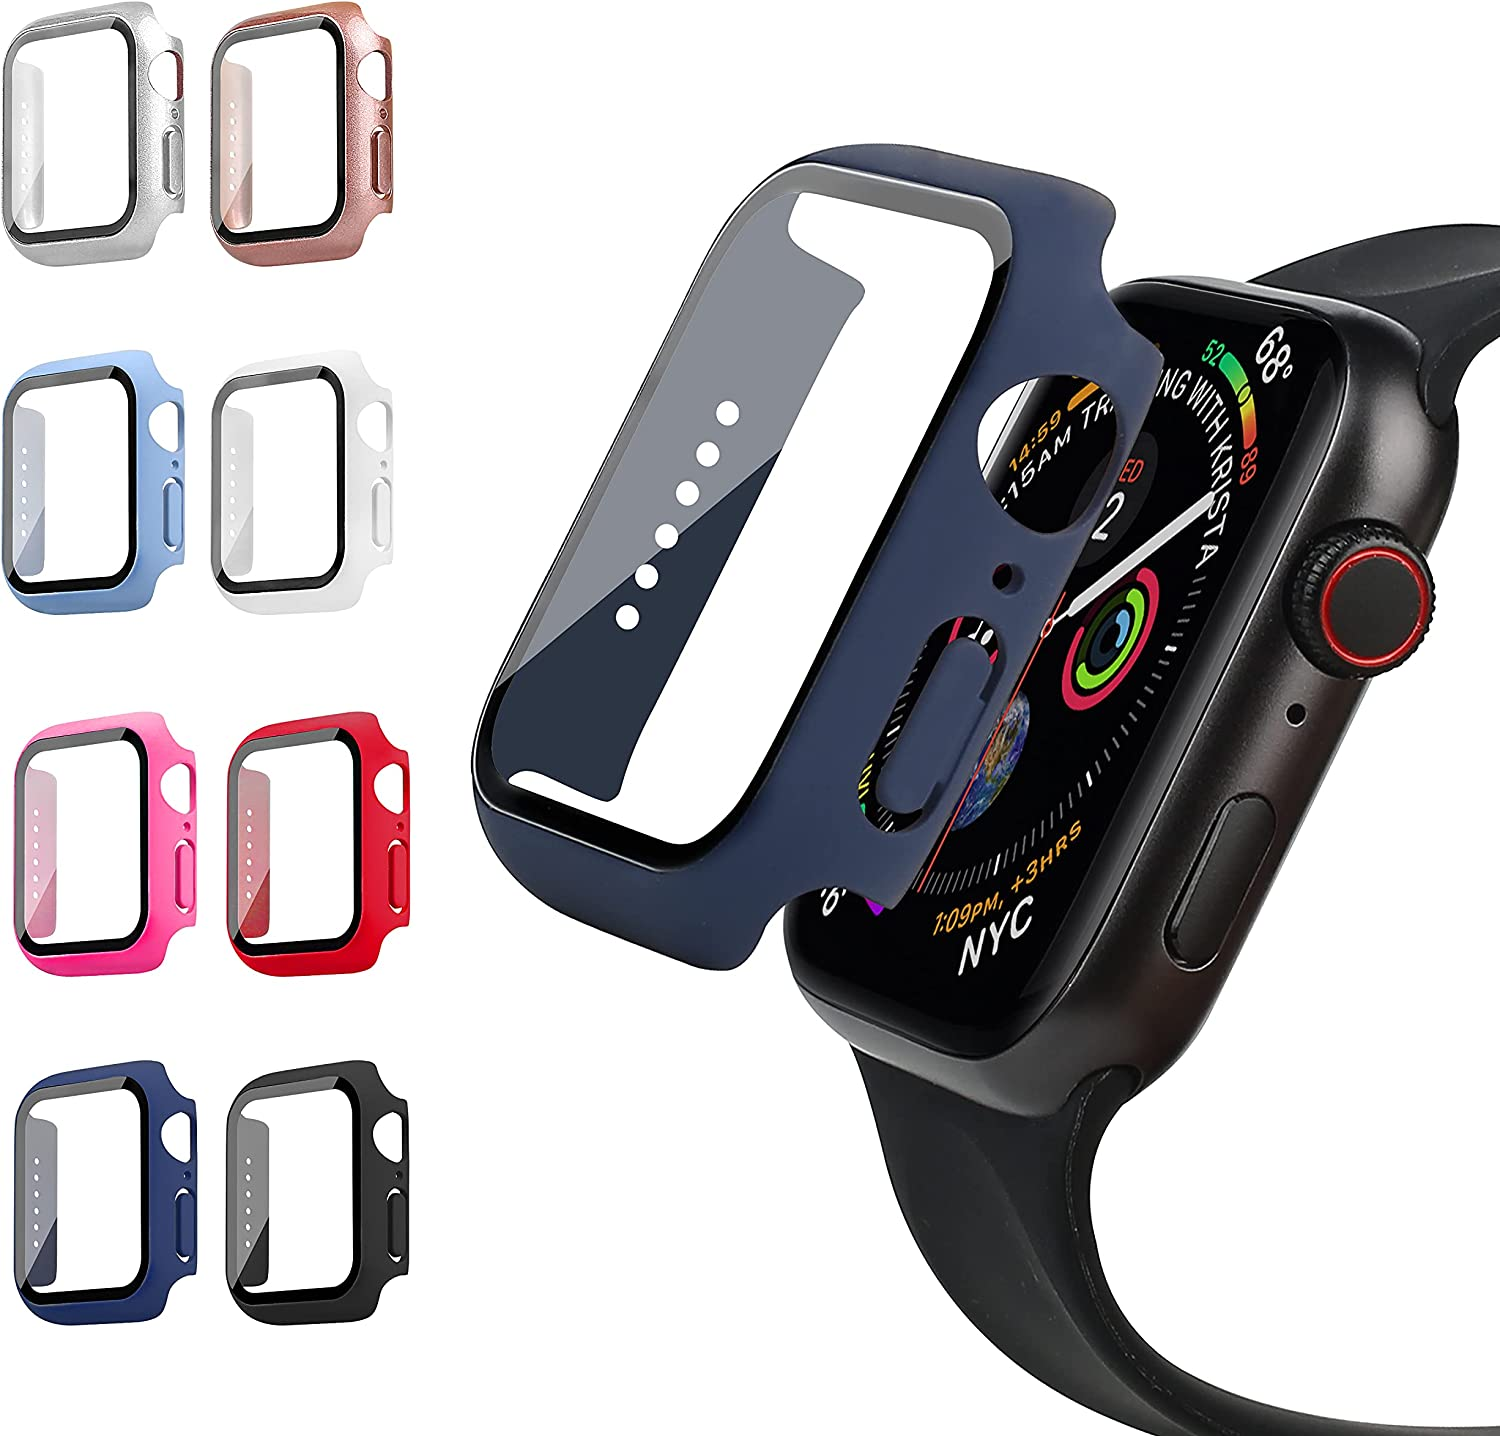 RIDAINTY 8 Pack 40mm Screen Protector Case Compatible with Apple Watch Series 6/5/4/SE, Hard PC HD Clear Tempered Glass Ultra Thin Bumper iWatch Protective Cover Smartwatch Accessories for Women Men